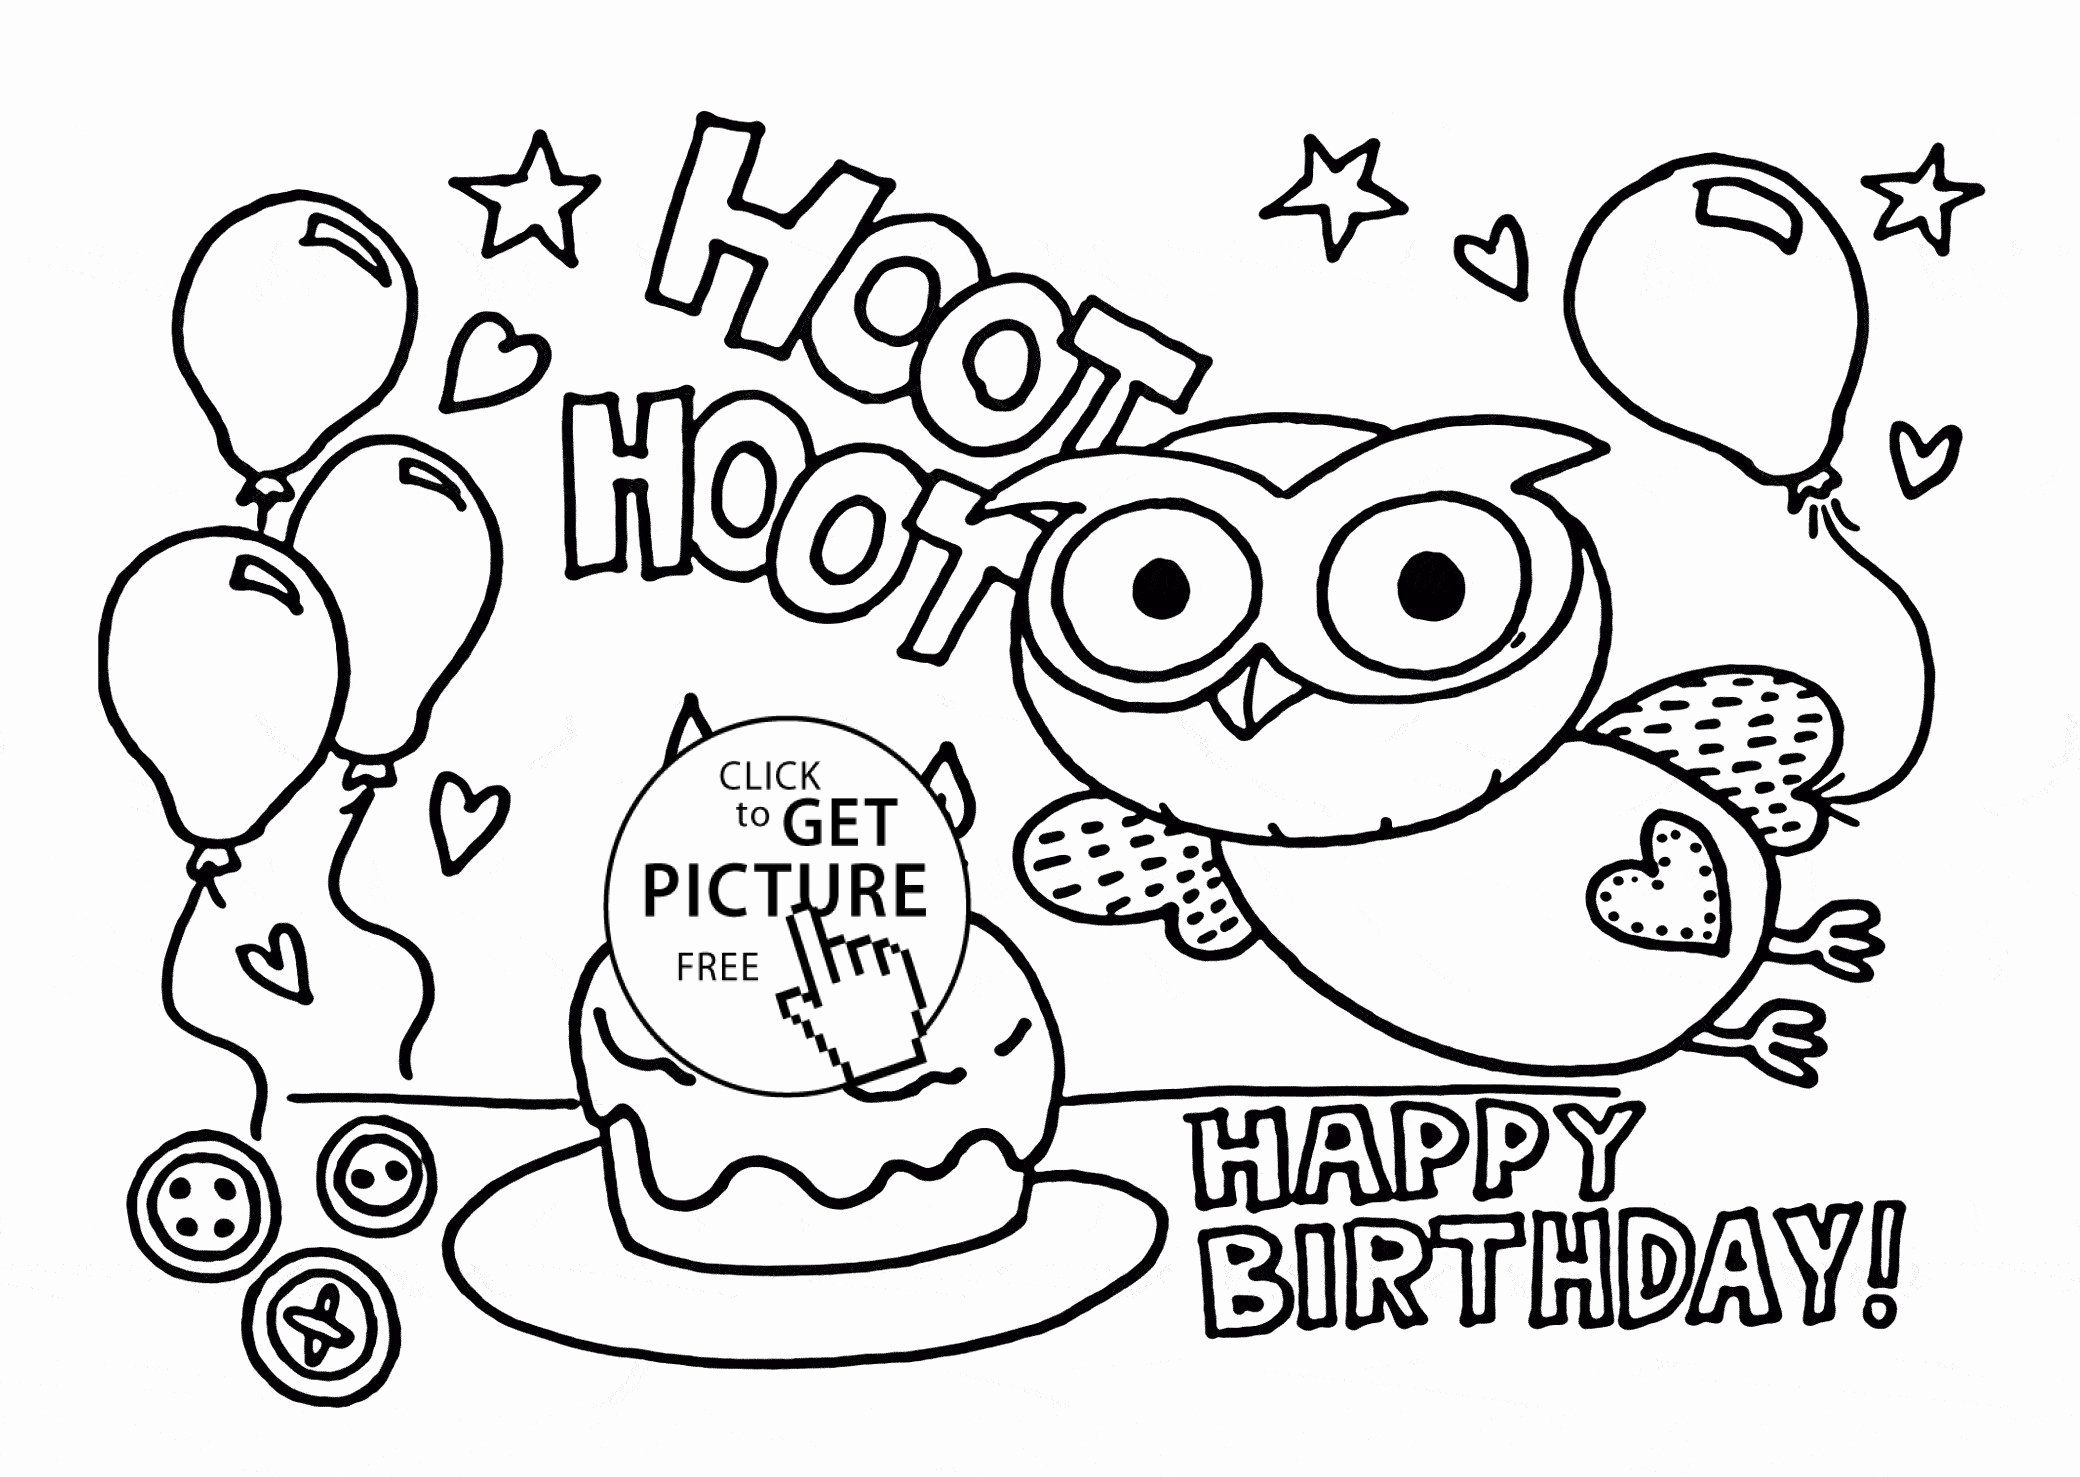 Coloring Pages For Your Boyfriend Unique Awesome Birthday Balloons